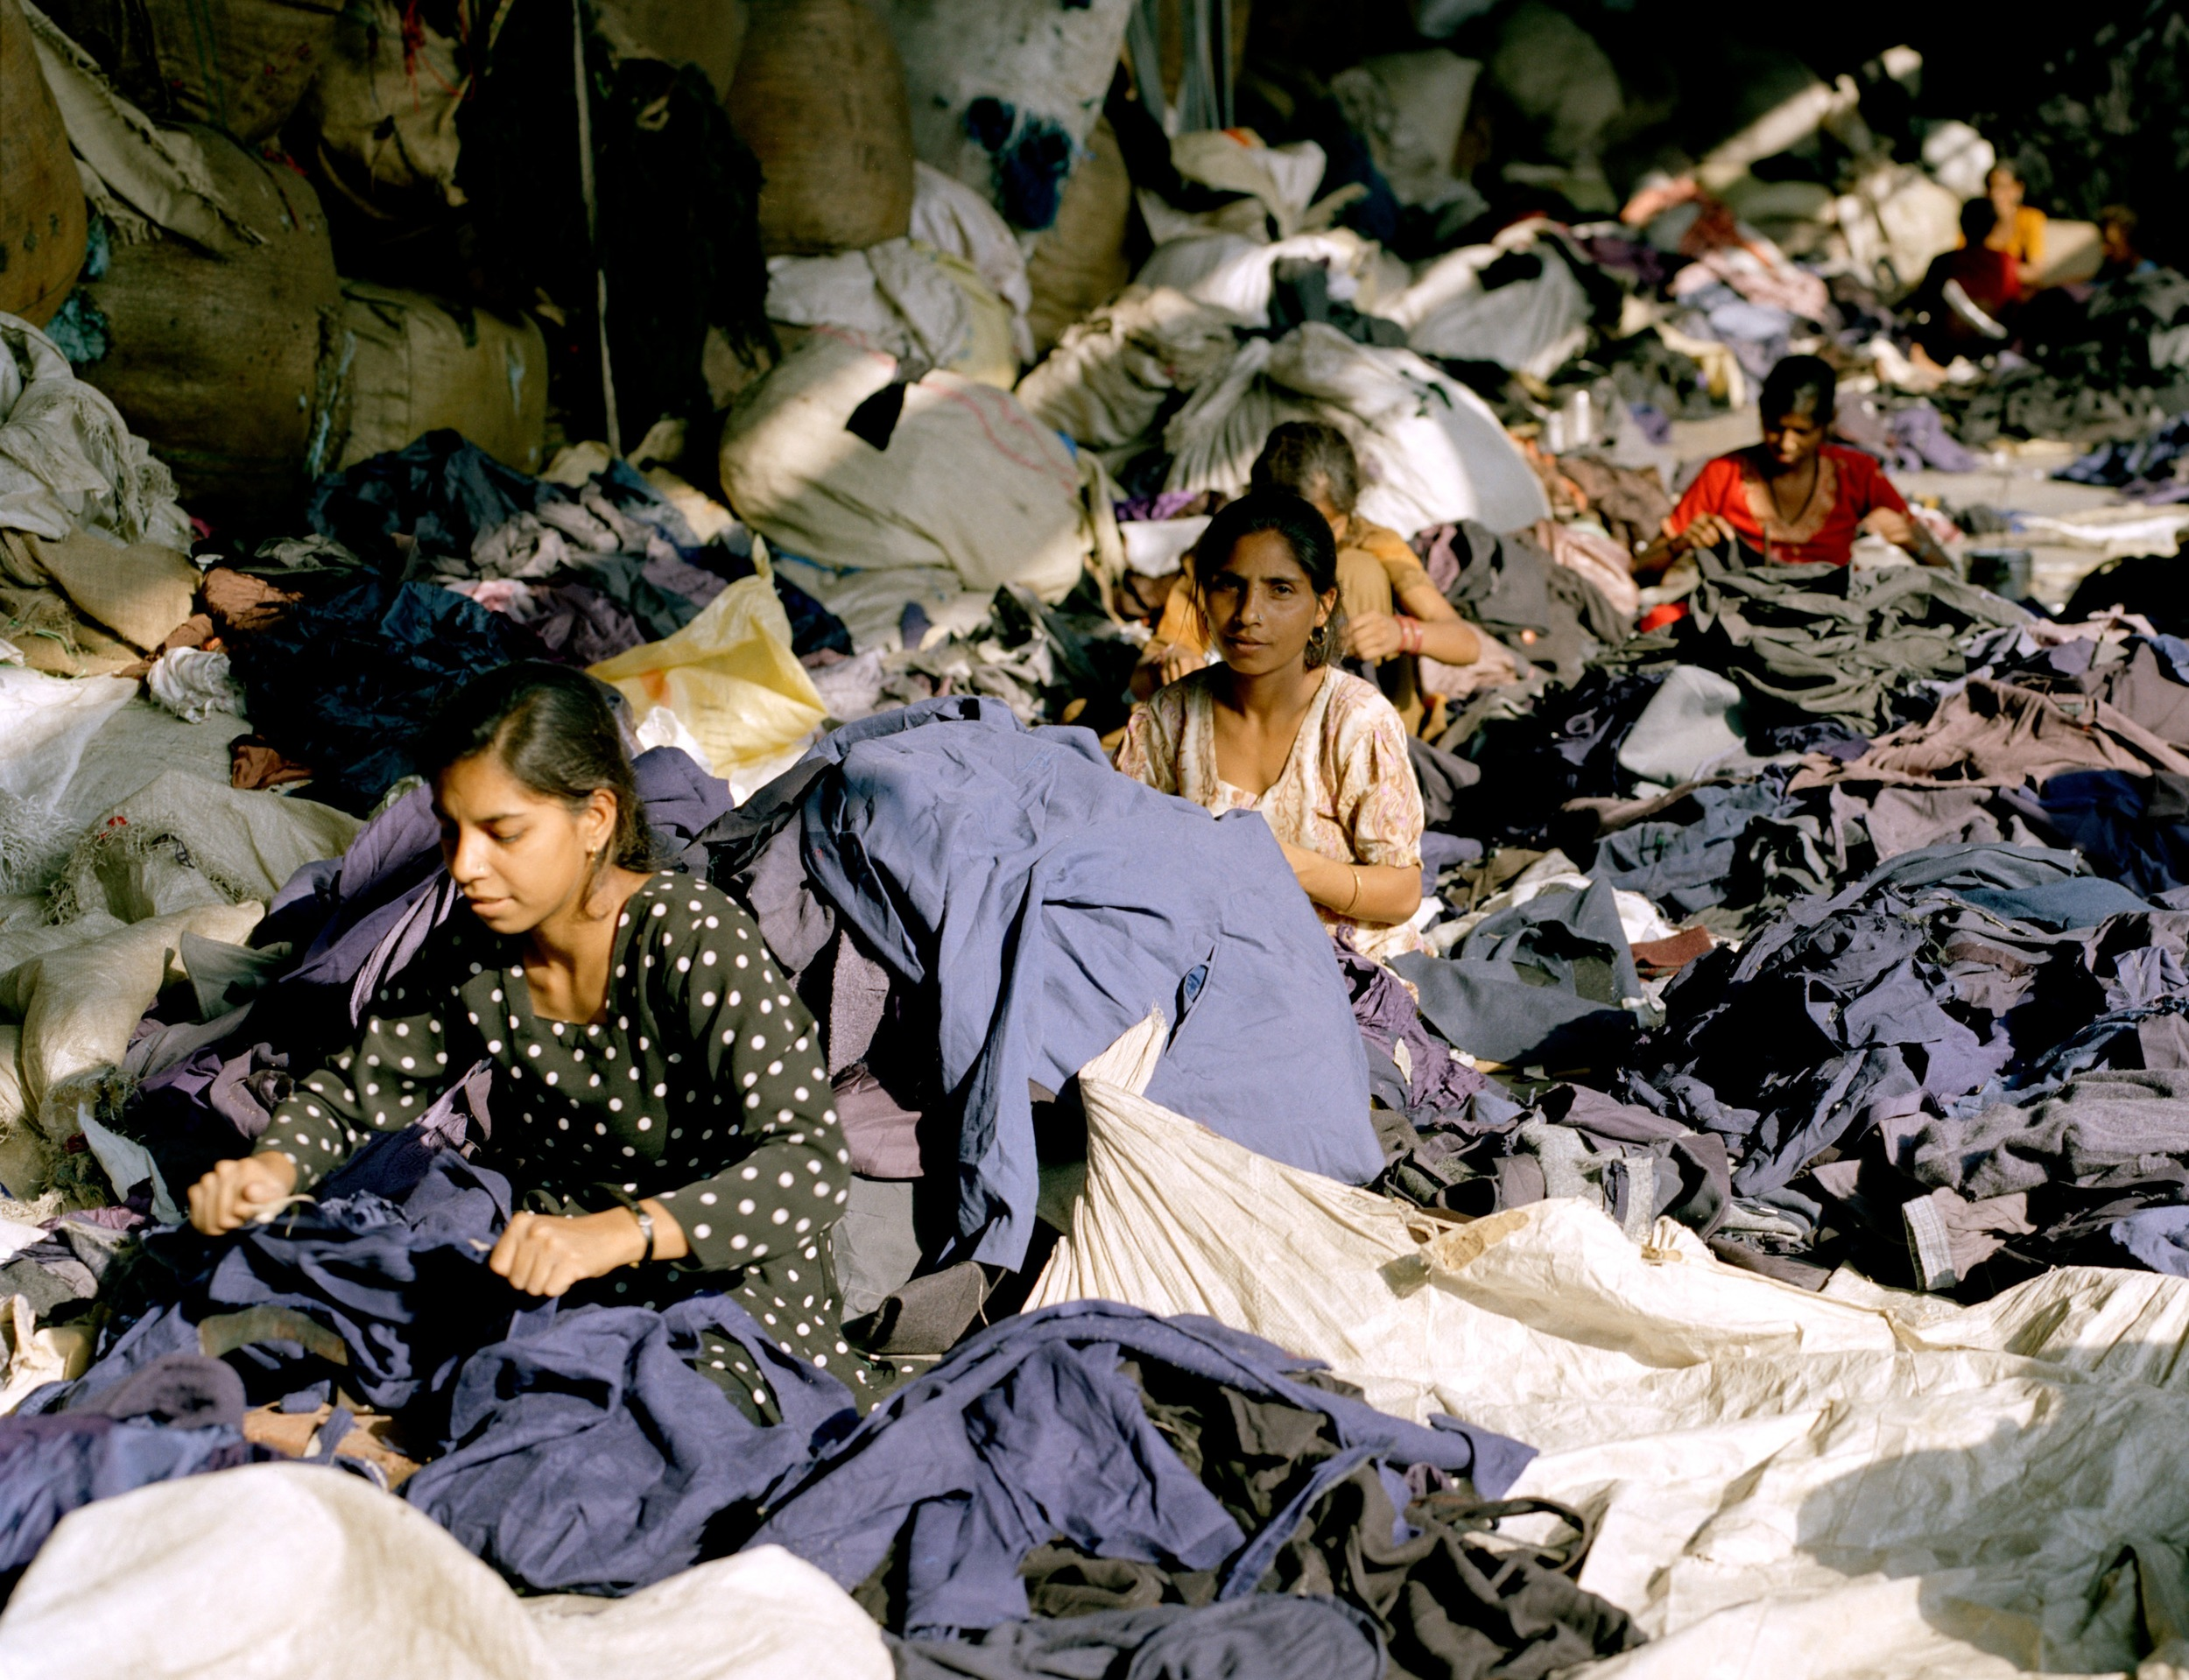 THE RISE OF FAST FASHION: AT WHAT COST?